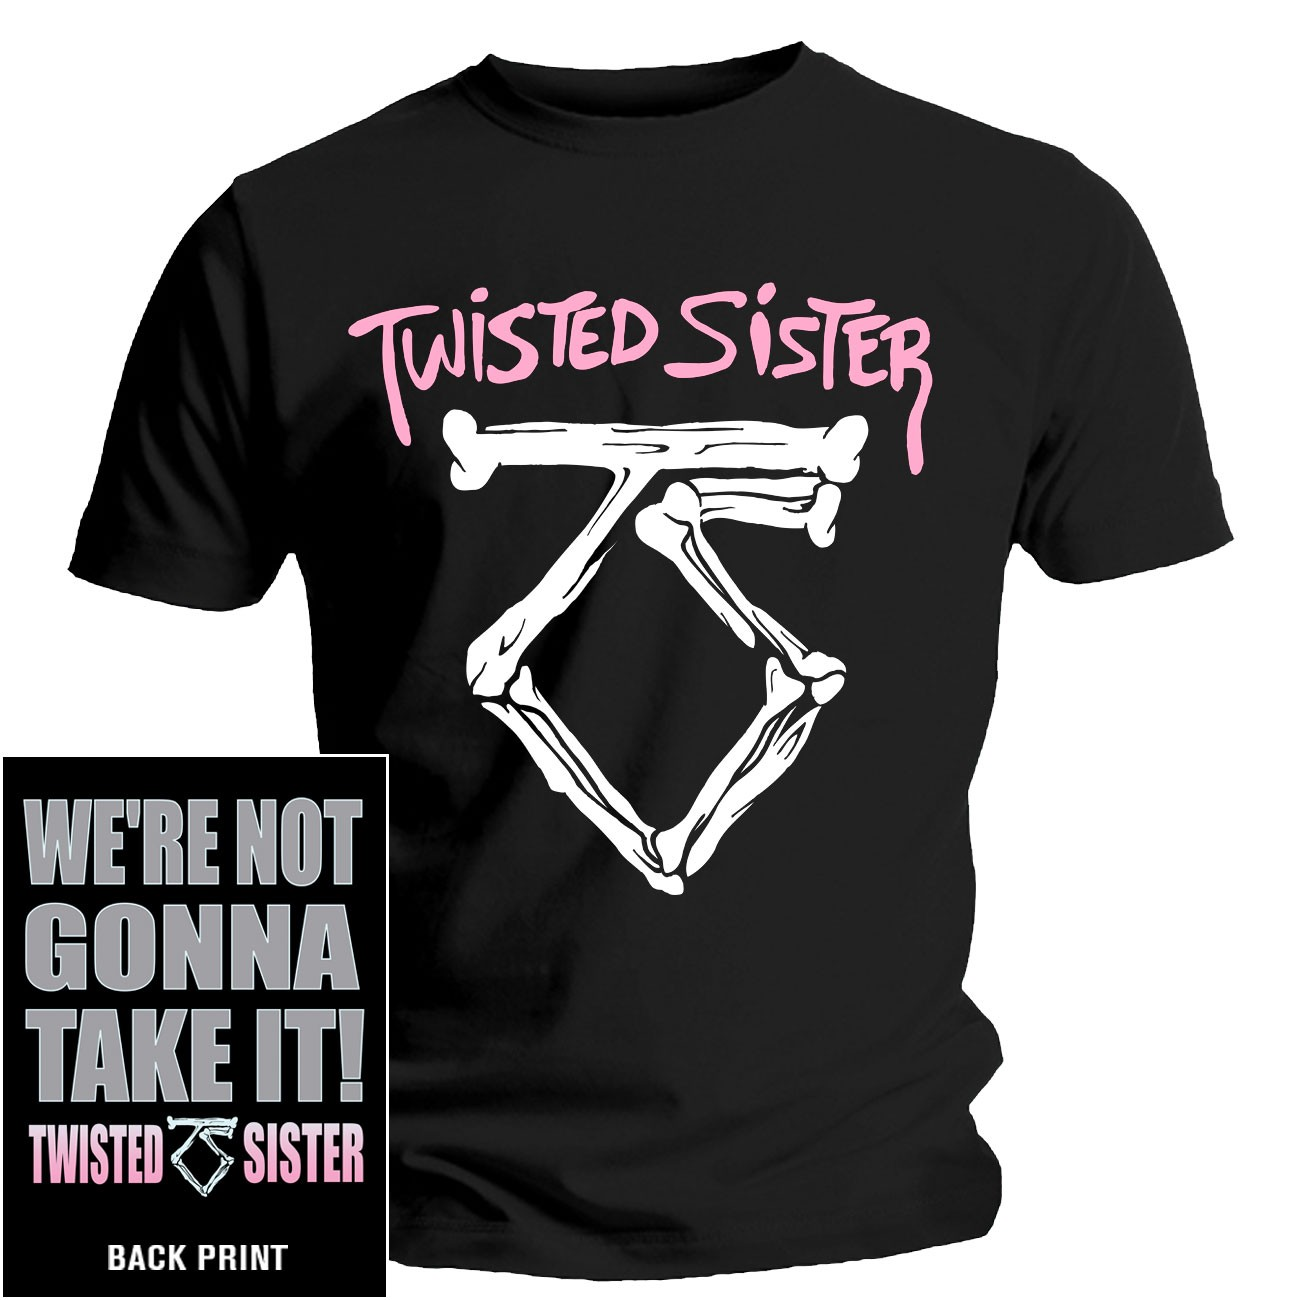 twisted sister 39 we 39 re not gonna take it 39 t shirt new. Black Bedroom Furniture Sets. Home Design Ideas